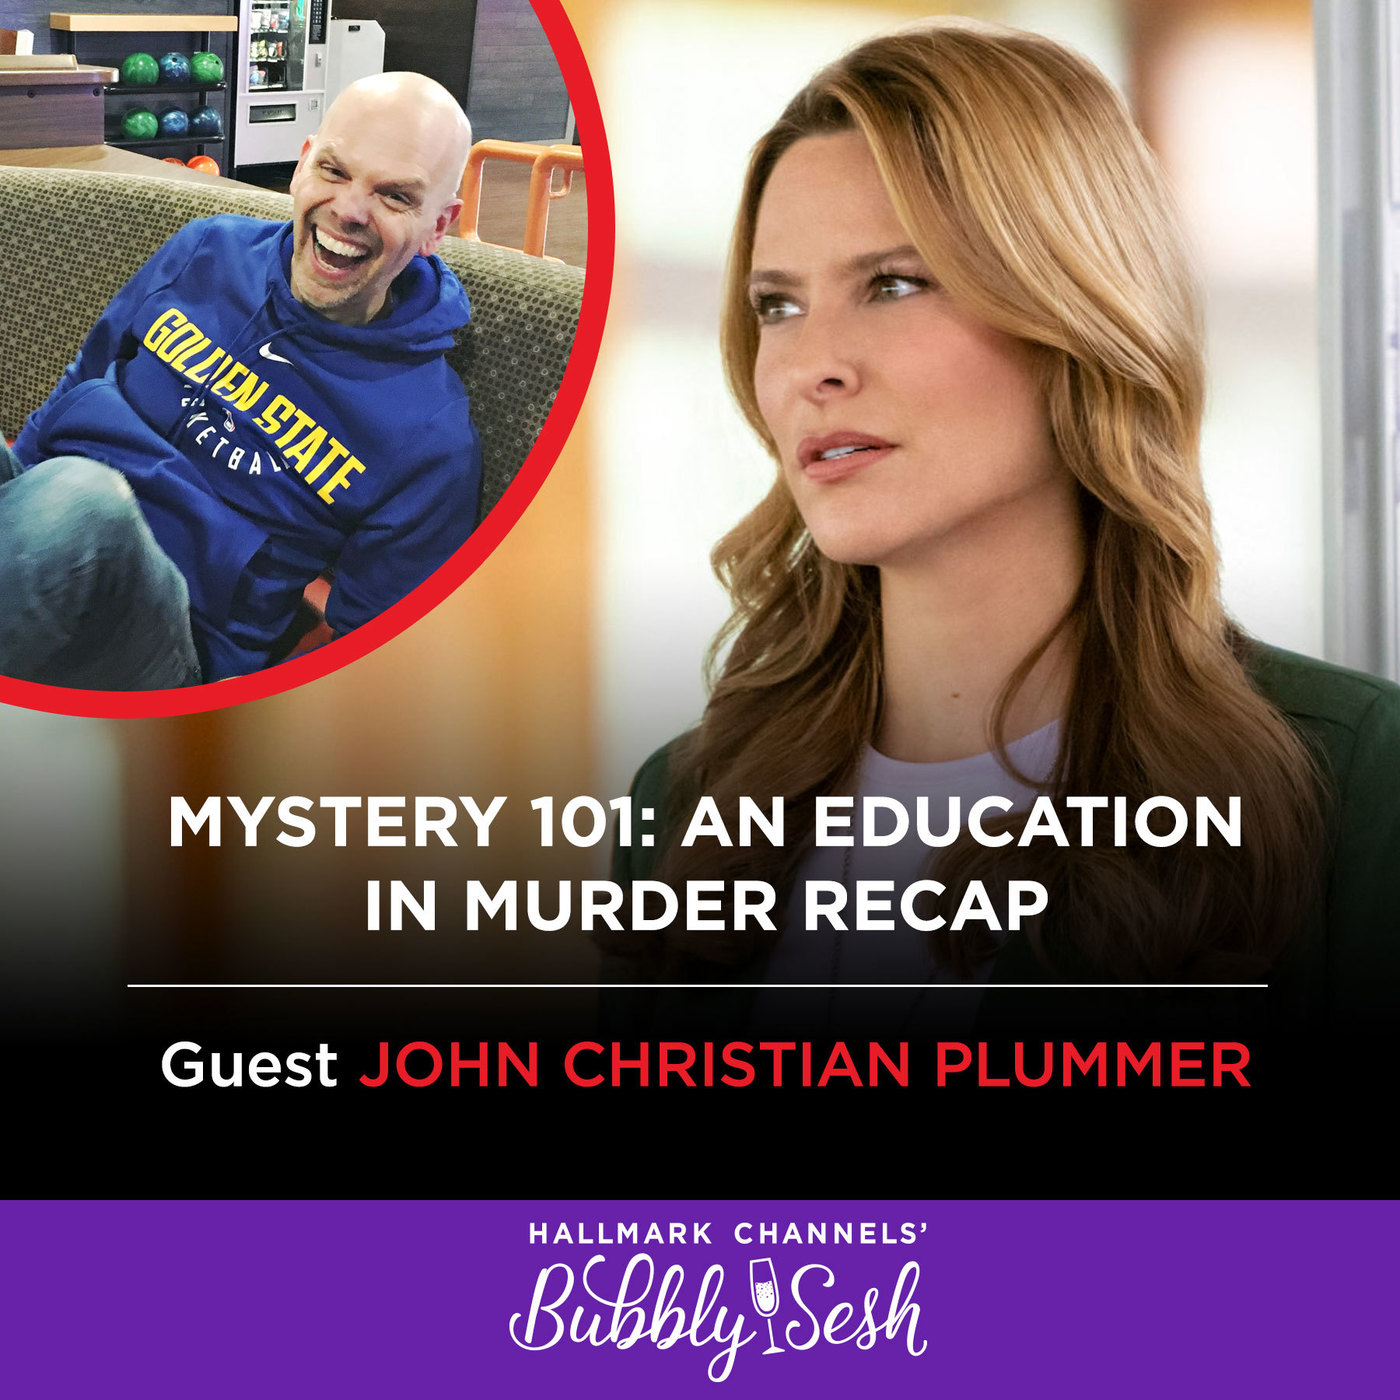 Mystery 101: An Education in Murder Recap with Guest John Christian Plummer